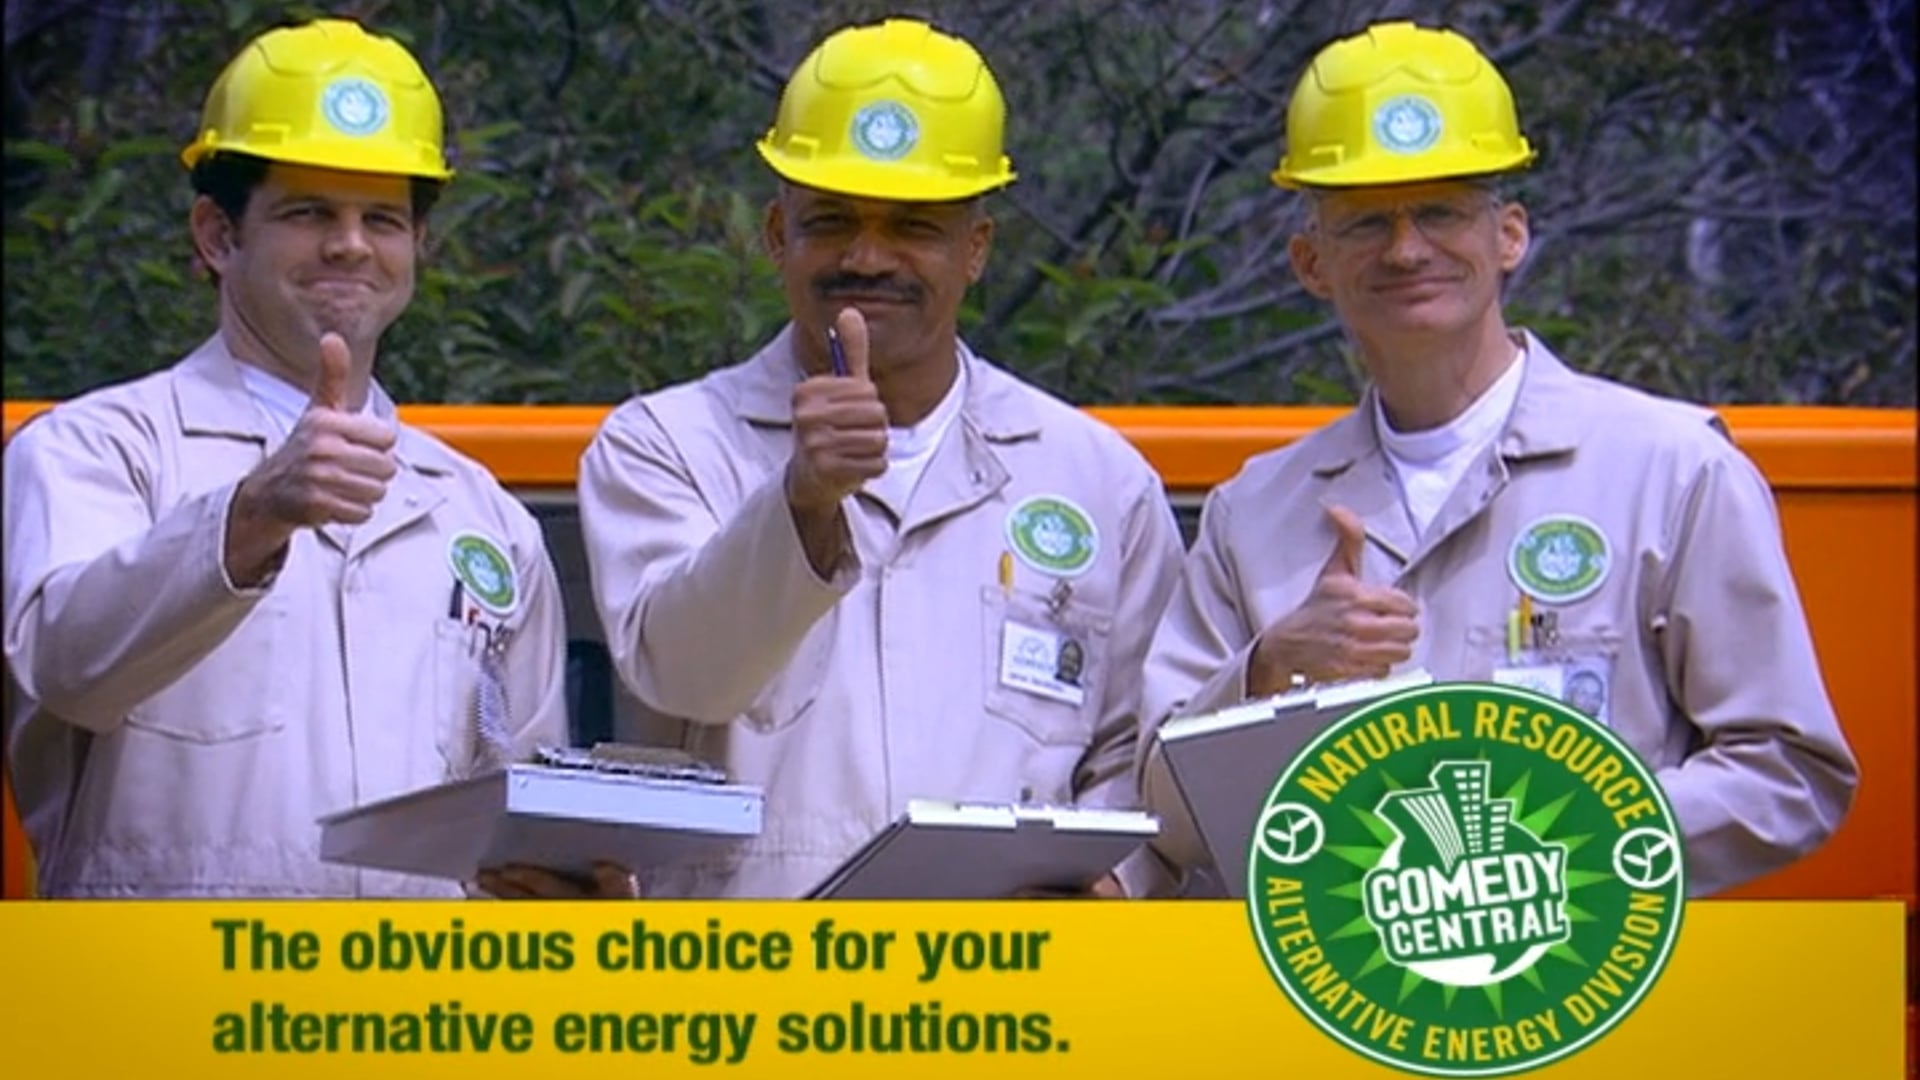 Comedy Central - Natural Resources Parody Image Spot